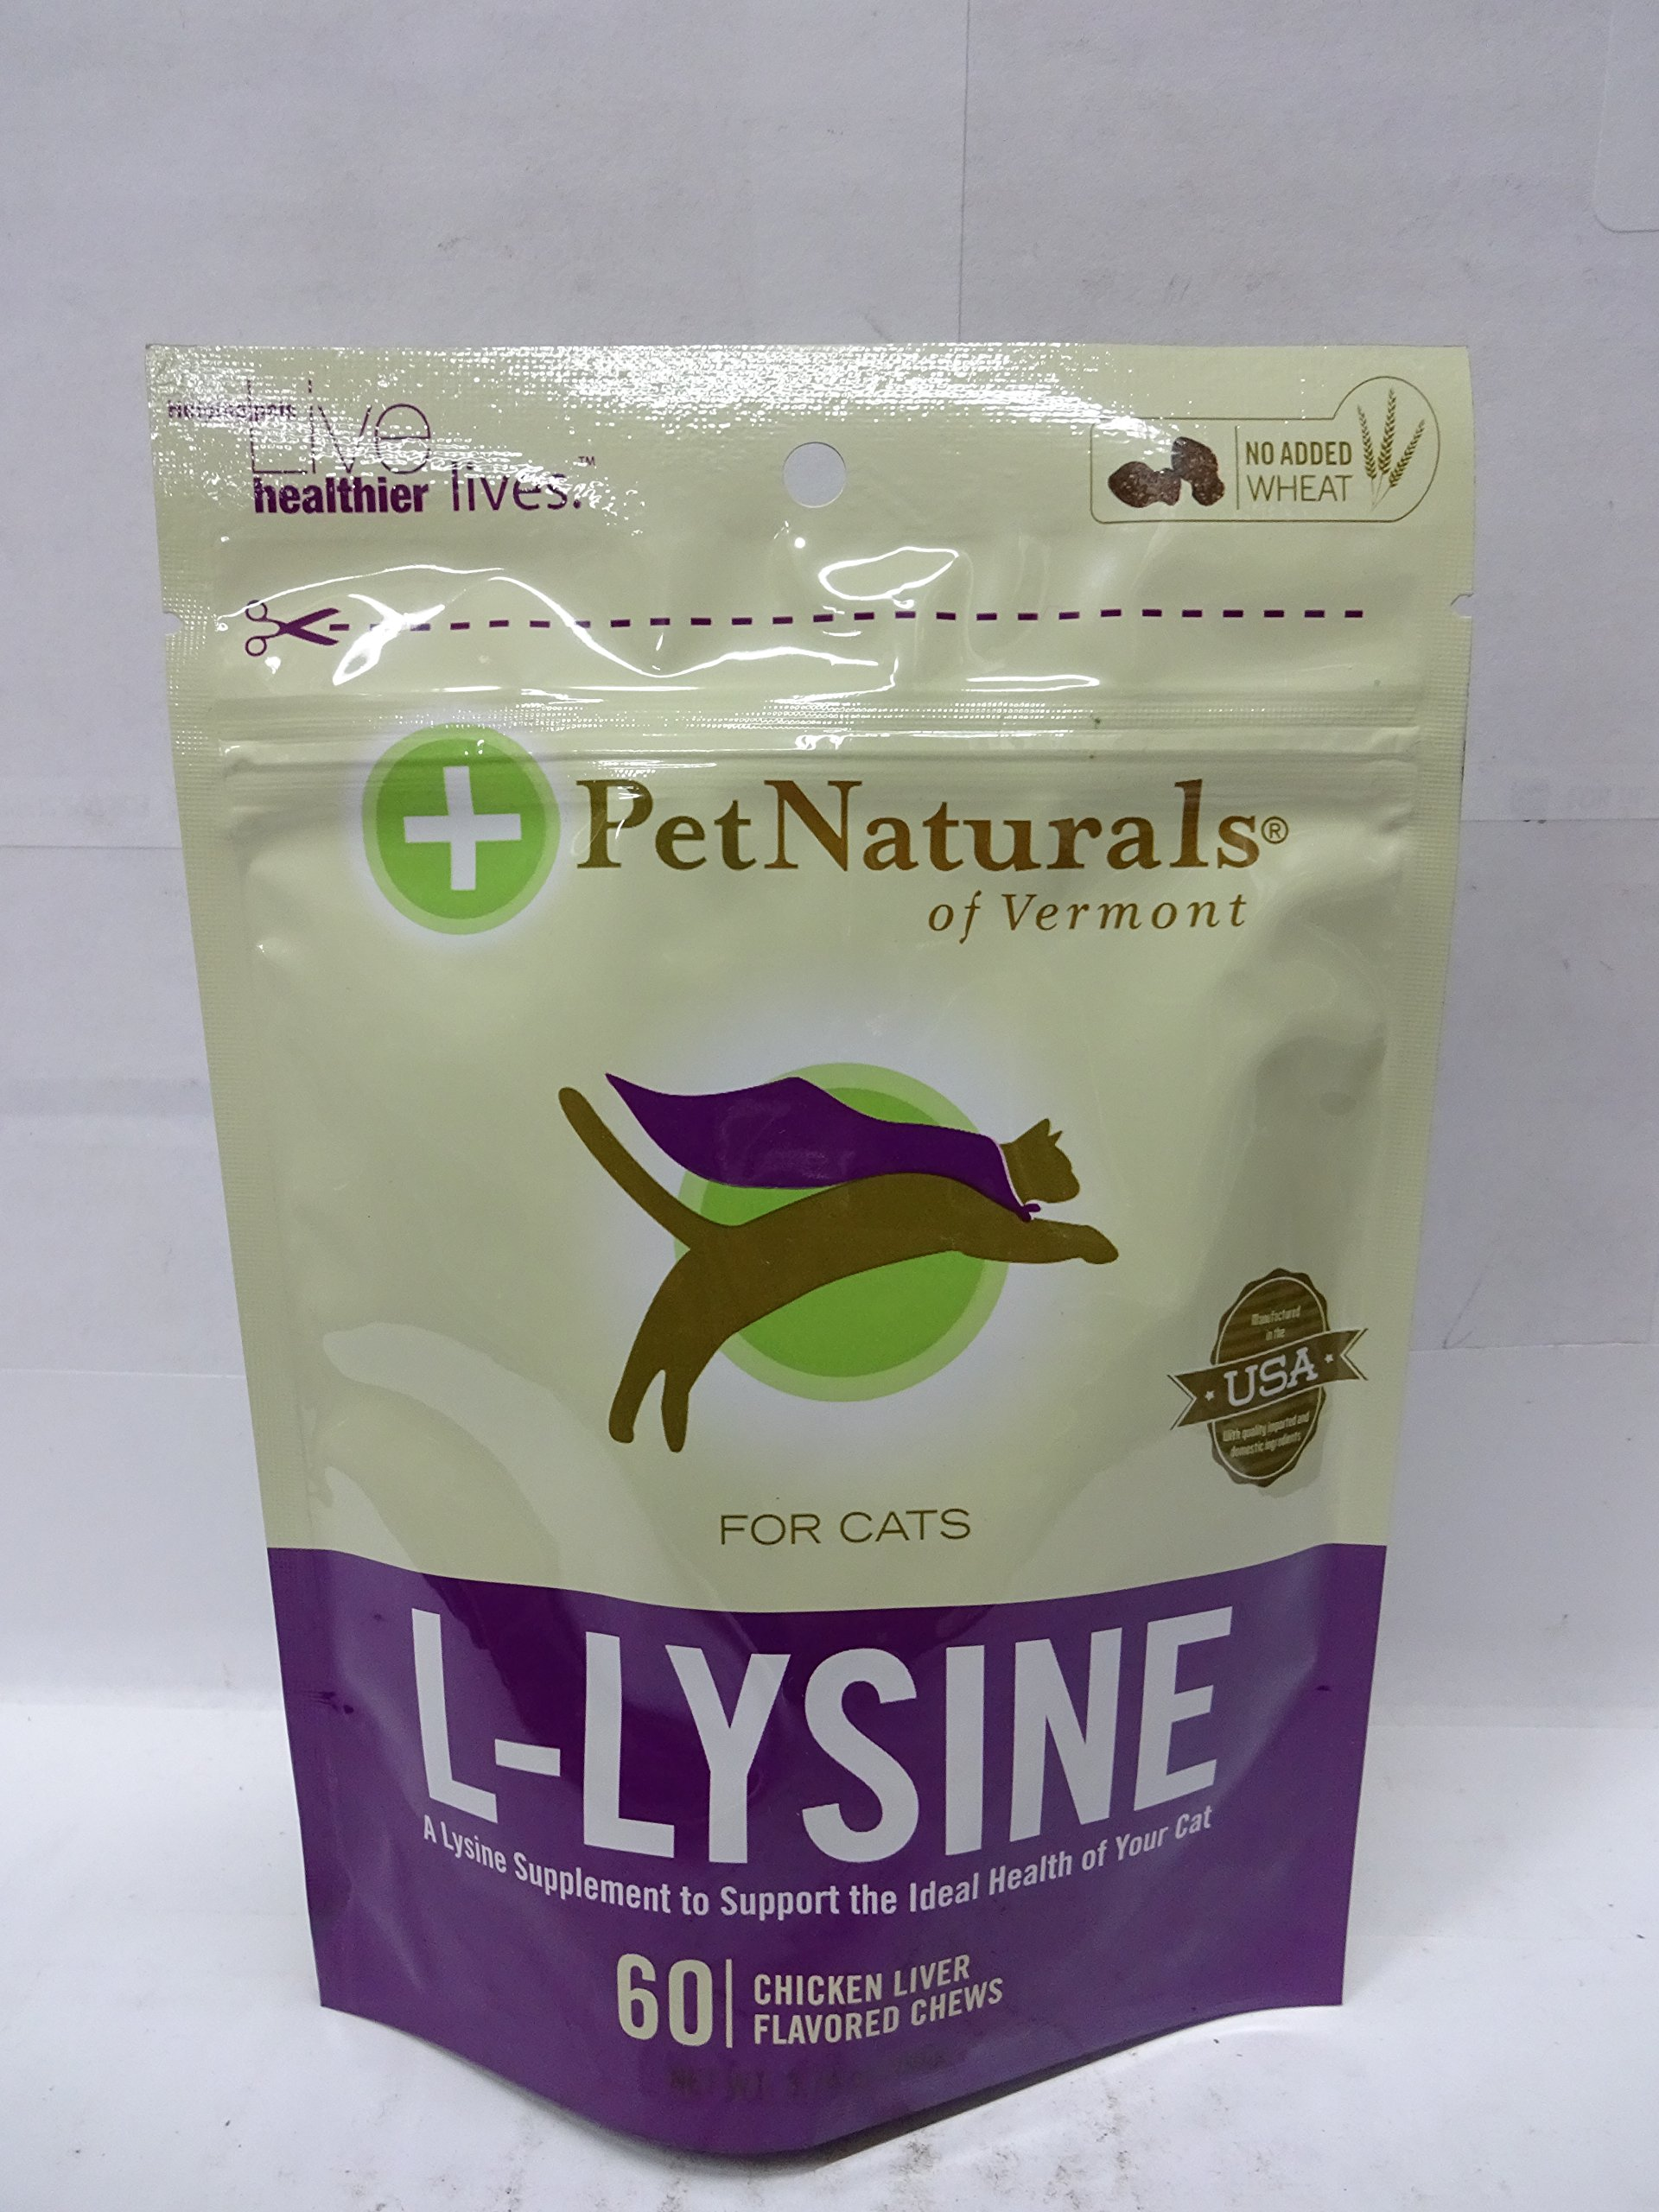 Pet Naturals of Vermont L-Lysine 60 Fun-Shaped Chews for Cats - 8 pack by Pet Naturals